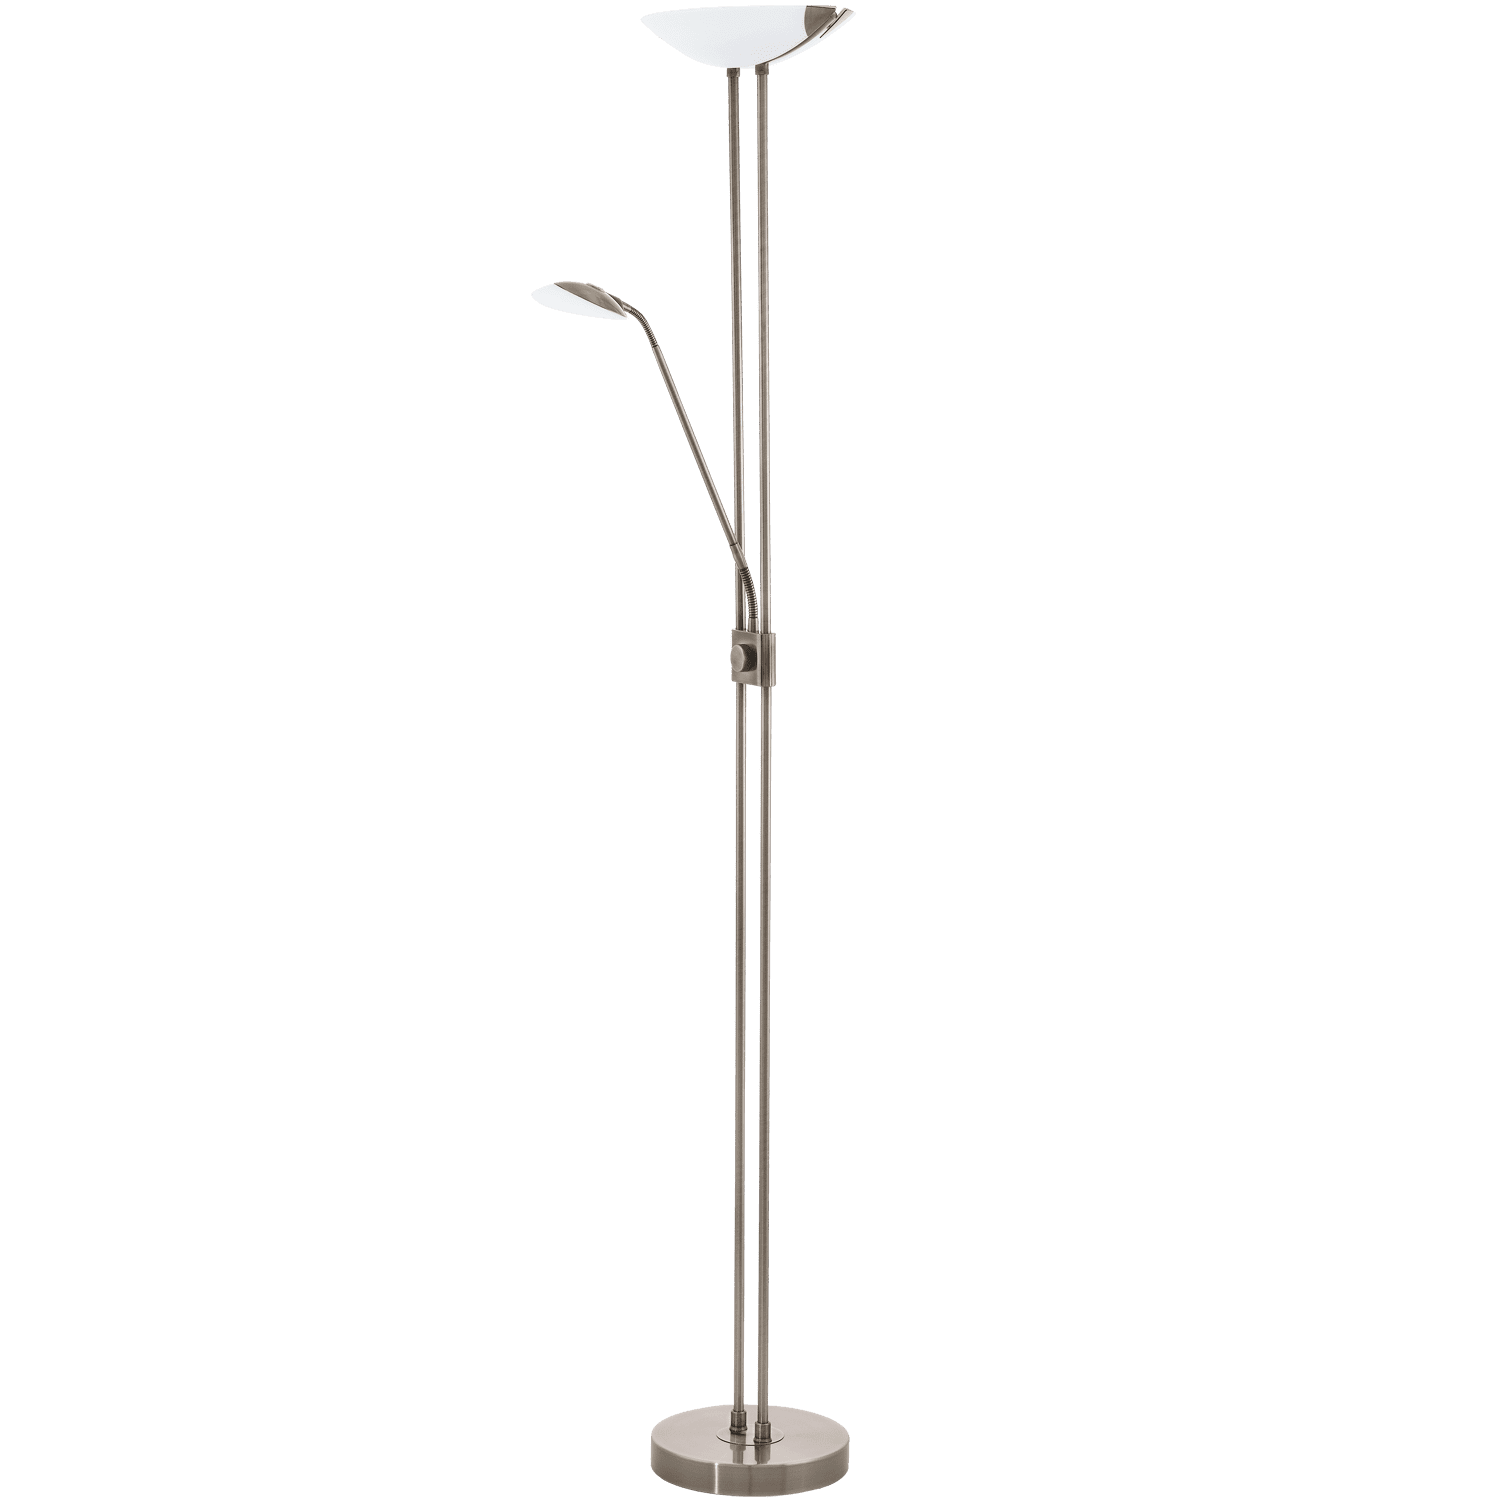 eglo 93876 baya led eglo 93876 baya led bronzed mother child floor lamp with white shades the eglo 93876 is part of the floor lamps range aloadofball Gallery